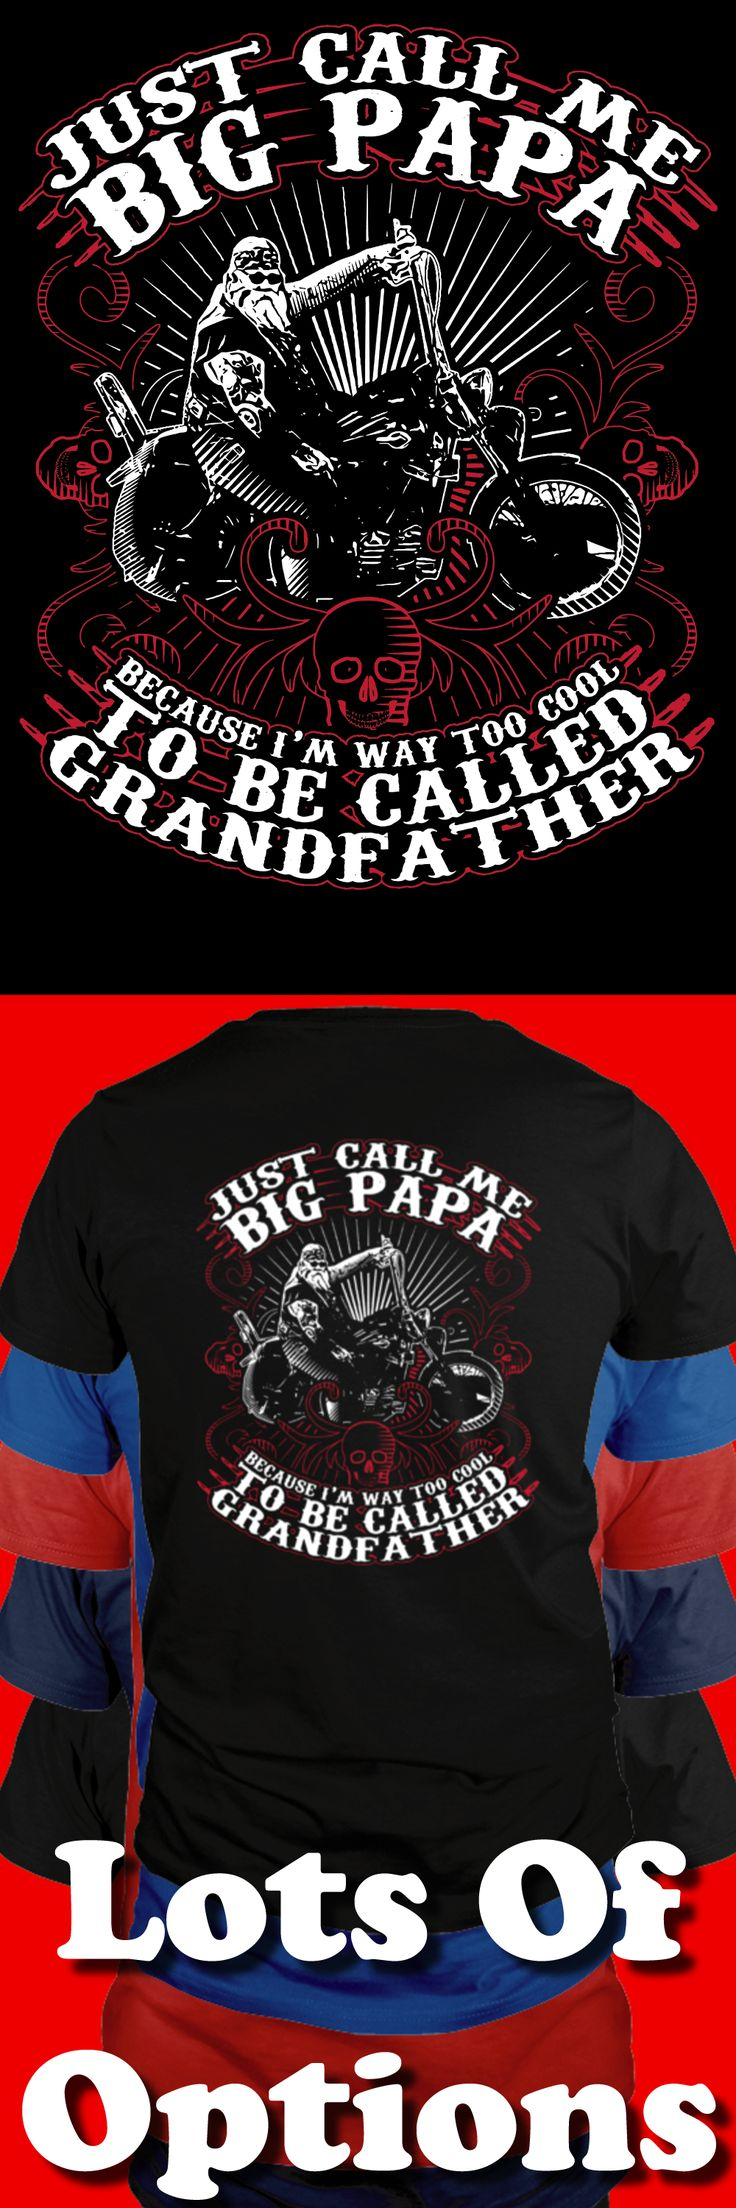 Biker Shirt: Are You A Big Papa Biker? Great Motorcycle Gift! Lots Of Sizes & Colors. Like Custom Motorcycles, Baggers, Choppers, Harley Davidson or the Biker Life? Strict Limit Of 5 Shirts! Treat Yourself & Click Now! https://teespring.com/GP67-425